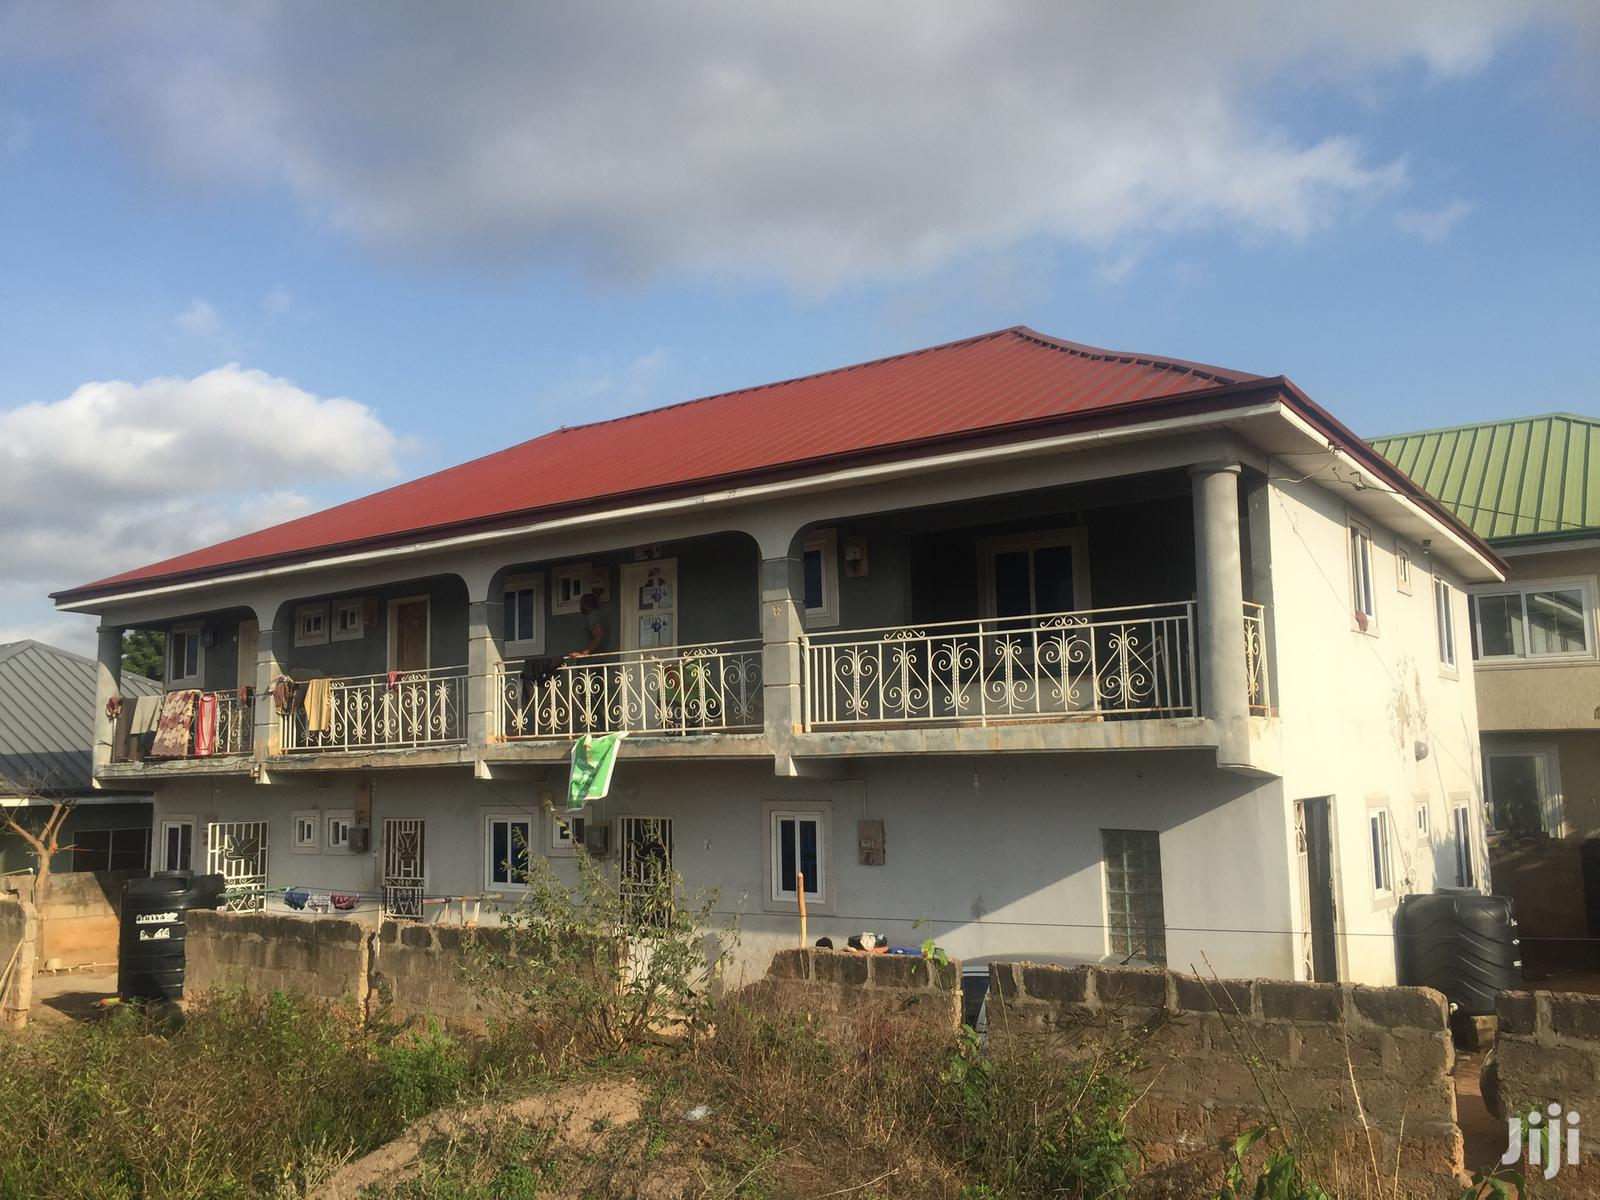 Chamber and Hall Apartment for Sale at Amarhia Otinibi   Houses & Apartments For Sale for sale in Accra Metropolitan, Greater Accra, Ghana